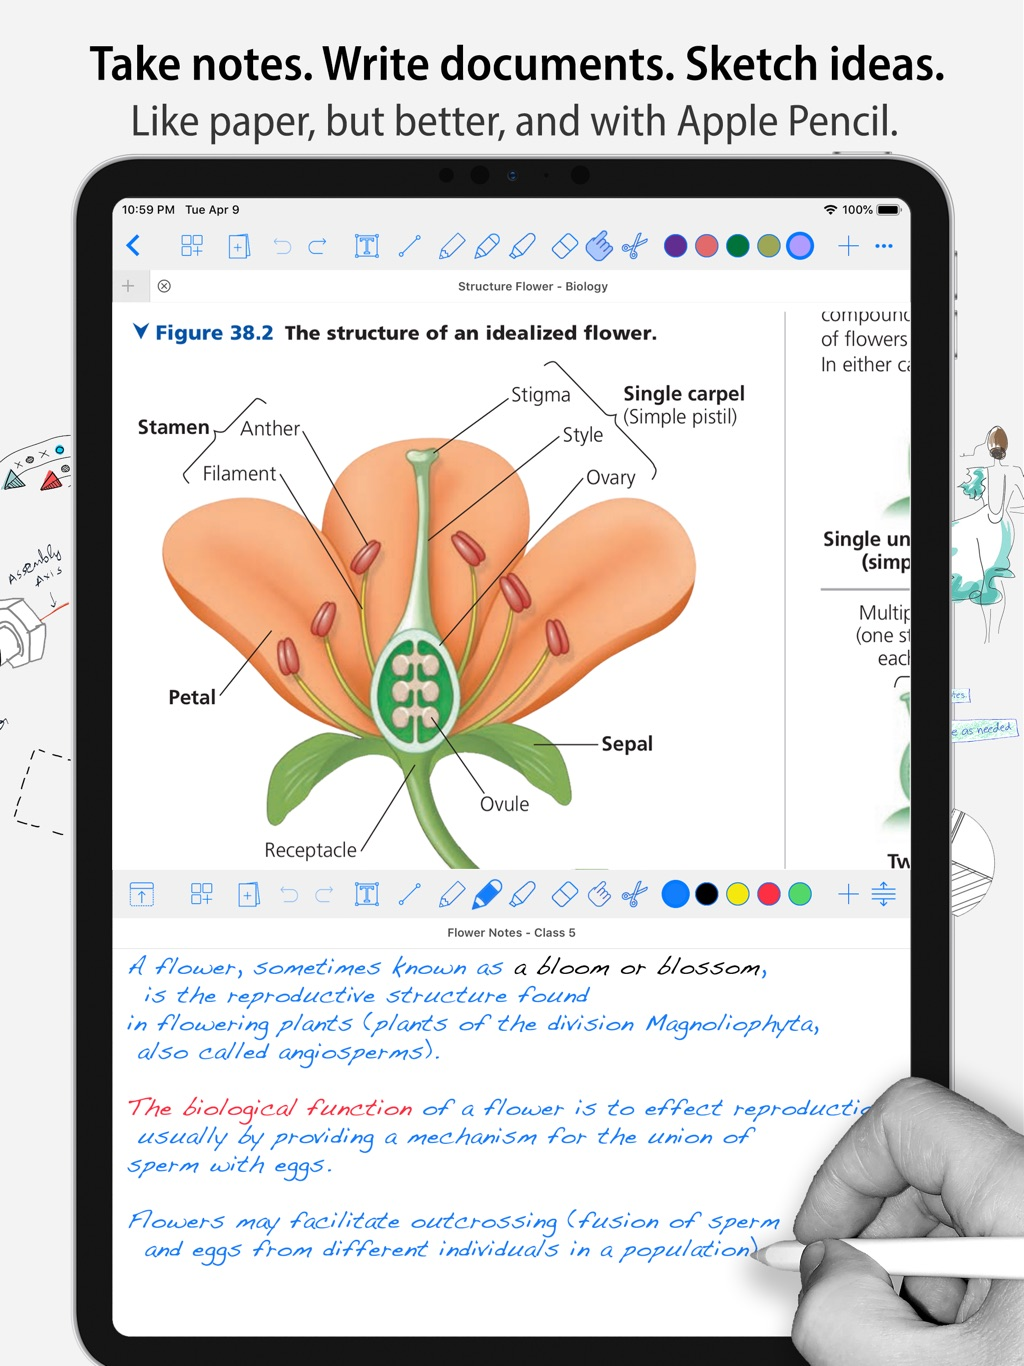 Notes Writer Pro- Sync & Share | AppFollow